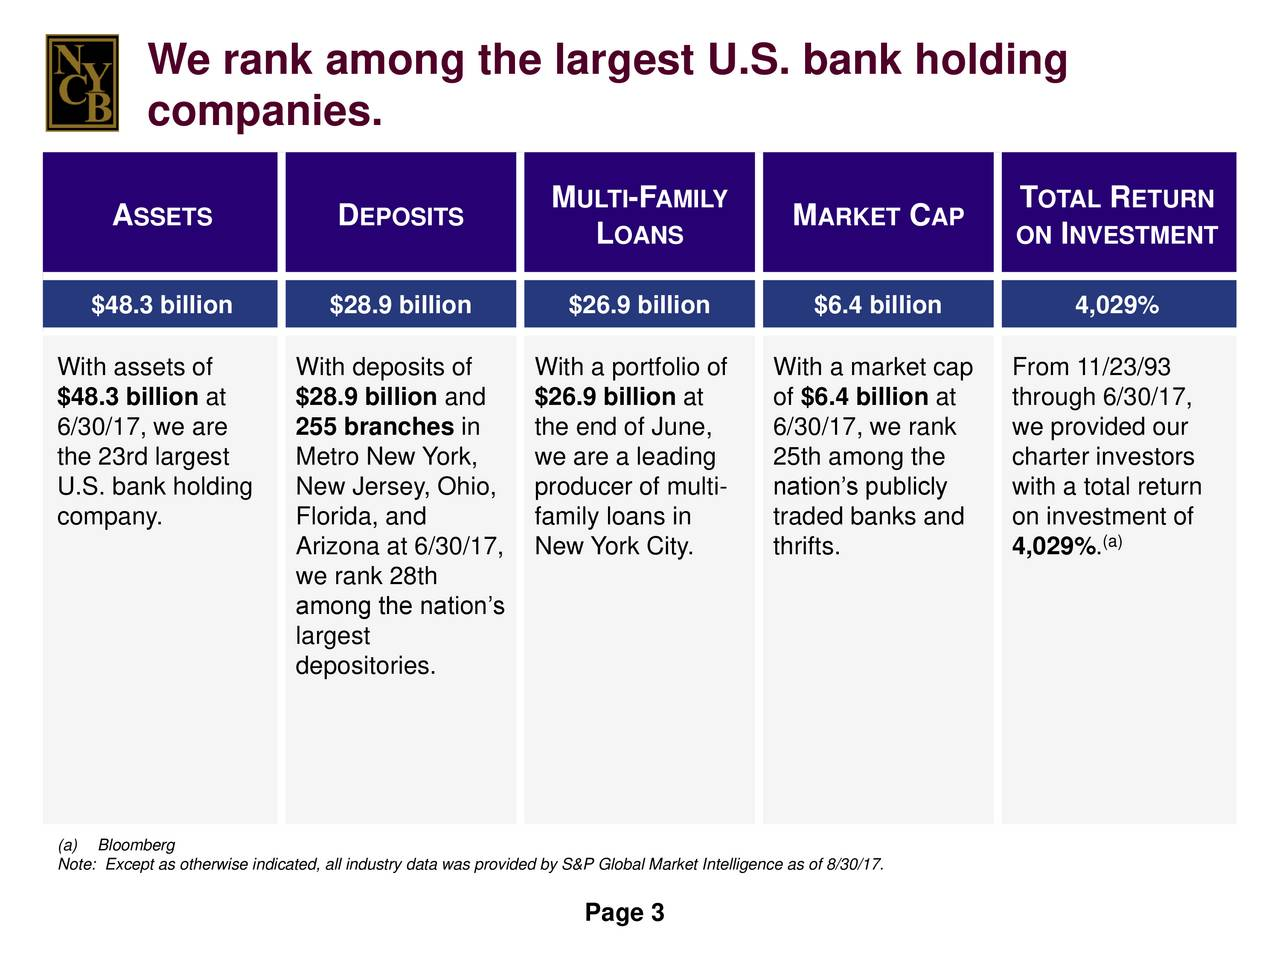 companies. M ULTI-FAMILY T OTAL R ETURN A SSETS D EPOSITS M ARKET CAP L OANS ON INVESTMENT $48.3 billion $28.9 billion $26.9 billion $6.4 billion 4,029% With assets of With deposits of With a portfolio ofWith a market cap From 11/23/93 $48.3 billion at $28.9 billion and $26.9 billion at of $6.4 billion at through 6/30/17, 6/30/17, we are 255 branches in the end of June, 6/30/17, we rank we provided our the 23rd largest Metro New York, we are a leading 25th among the charter investors U.S. bank holding New Jersey, Ohio, producer of multi- nations publicly with a total return company. Florida, and family loans in traded banks and on investment of (a) Arizona at 6/30/17New York City. thrifts. 4,029%. we rank 28th among the nations largest depositories. Note: Except as otherwise indicated, all industry data was provided by S&P Global Market Intelligence as of 8/30/17. Page 3